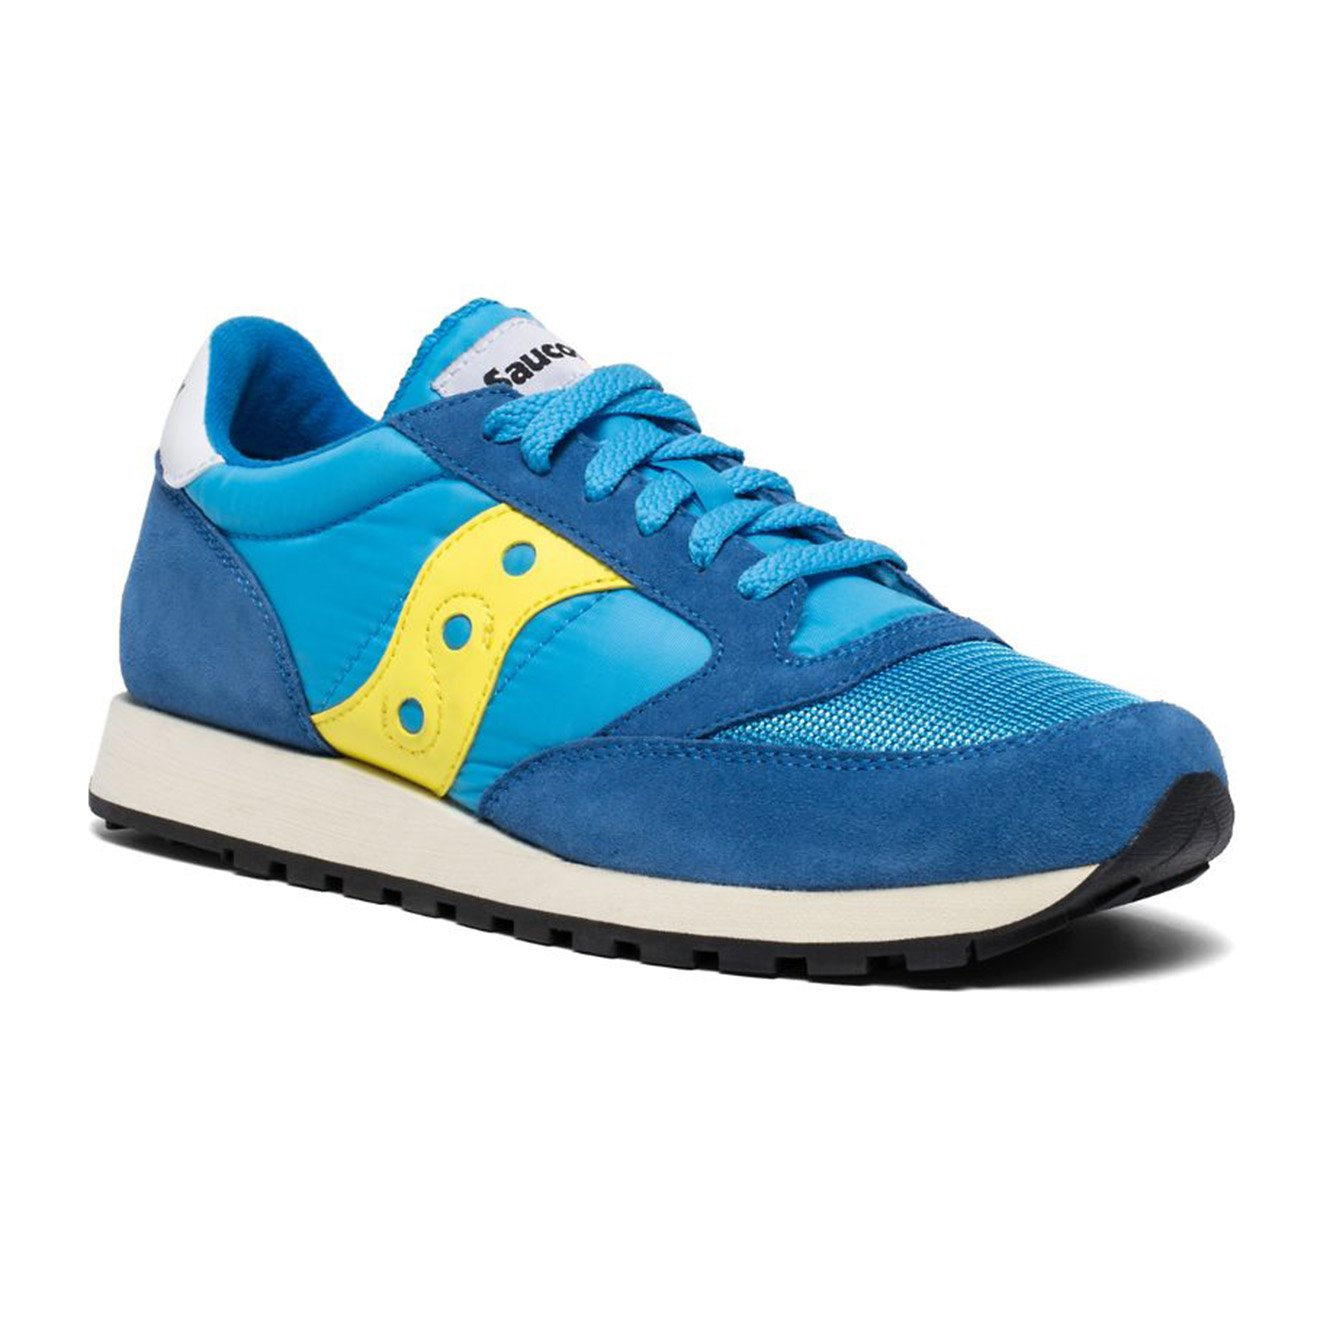 uk availability 38a82 8edba Saucony Jazz Original Vintage Trainers Blue / Yellow - Yards Store